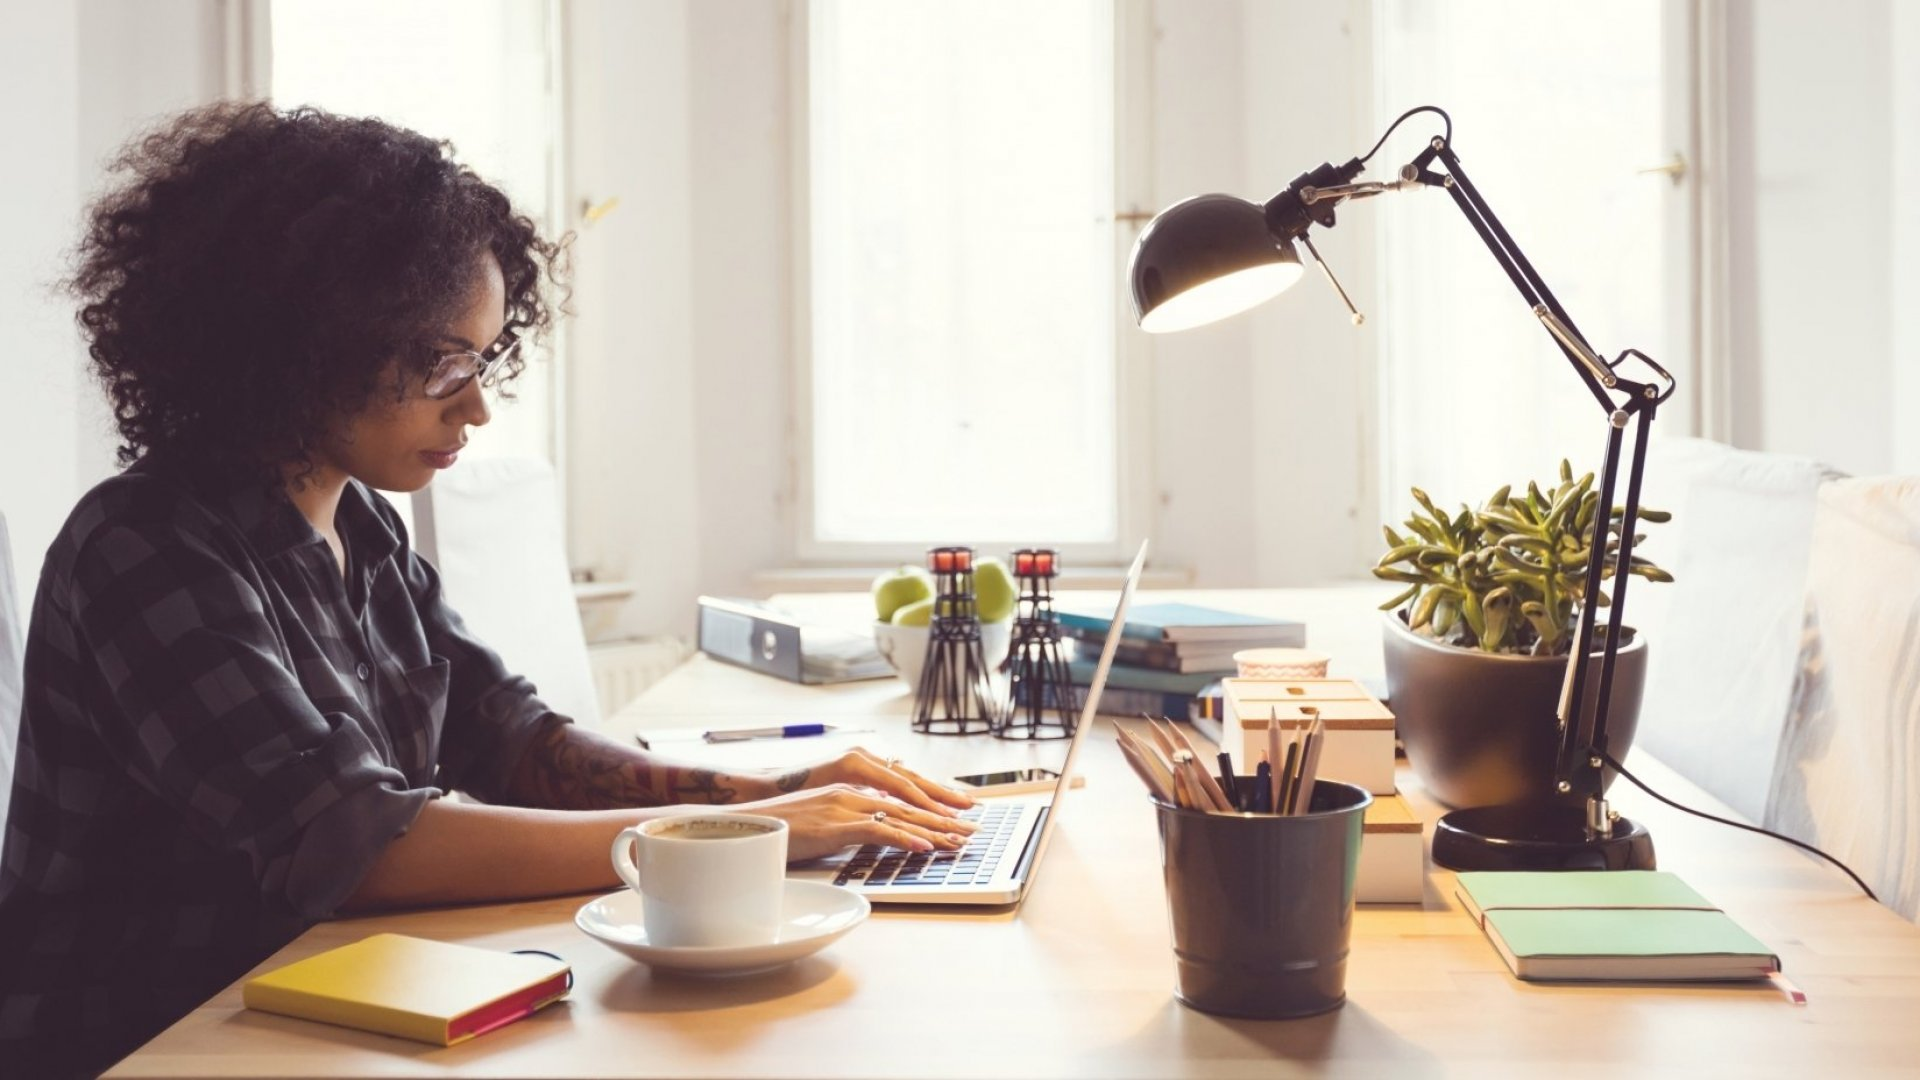 7 Important Pros and Cons to Consider Before Hiring Freelancers